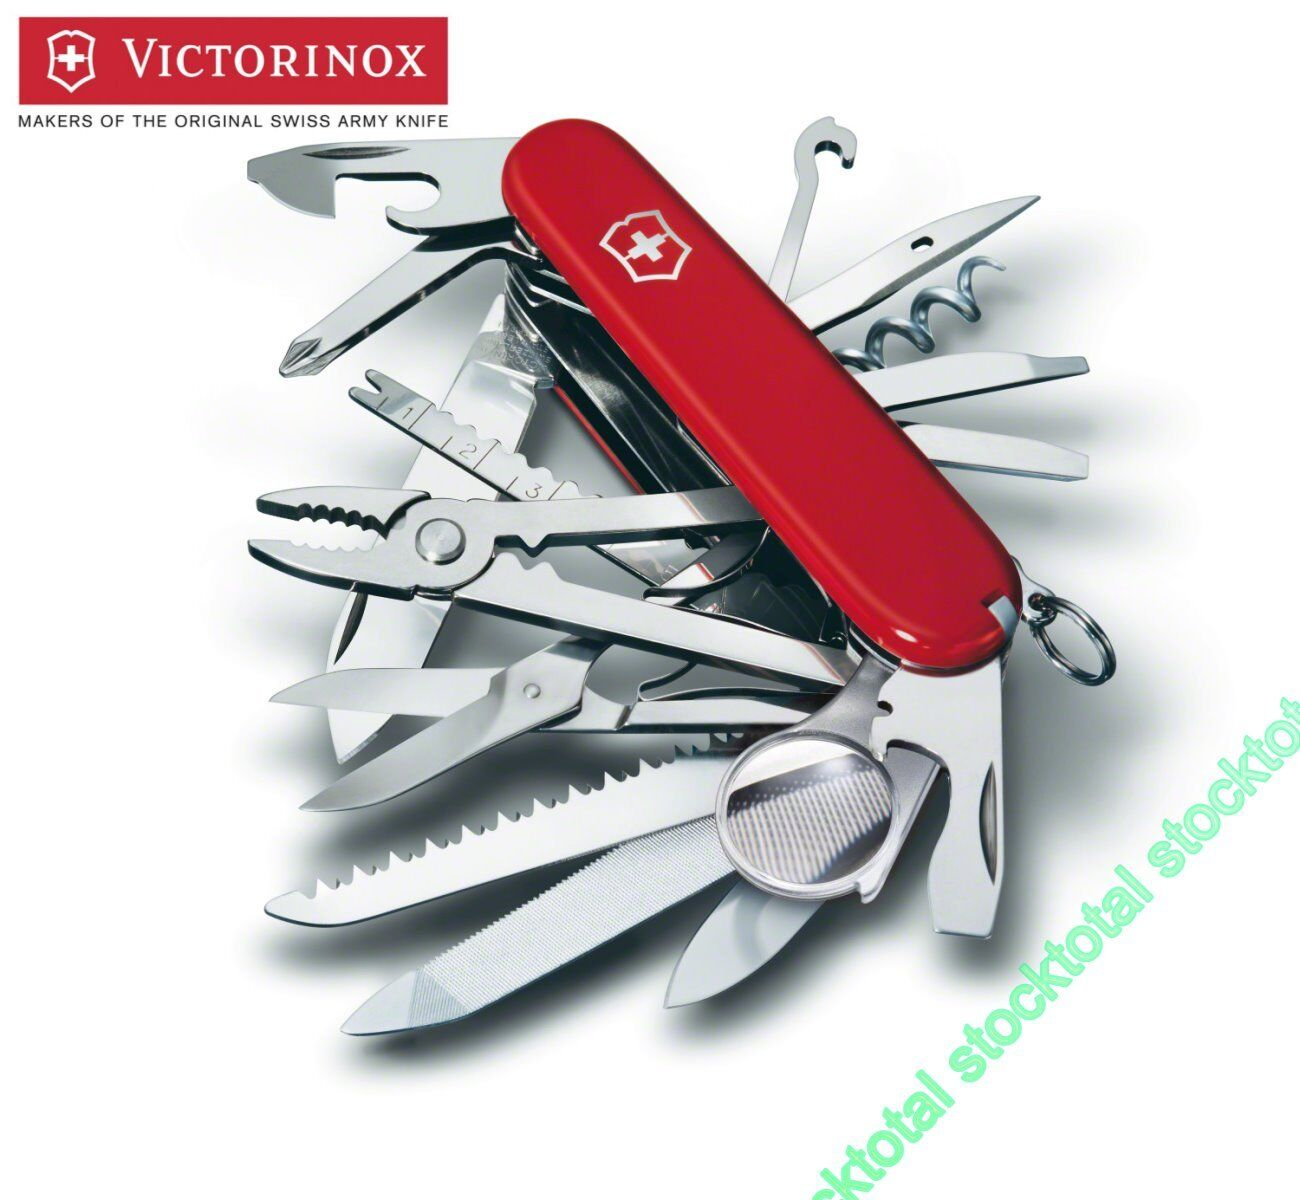 Swiss knife victorinox swiss army champ 33 functions  1.6975 pg  big discount prices